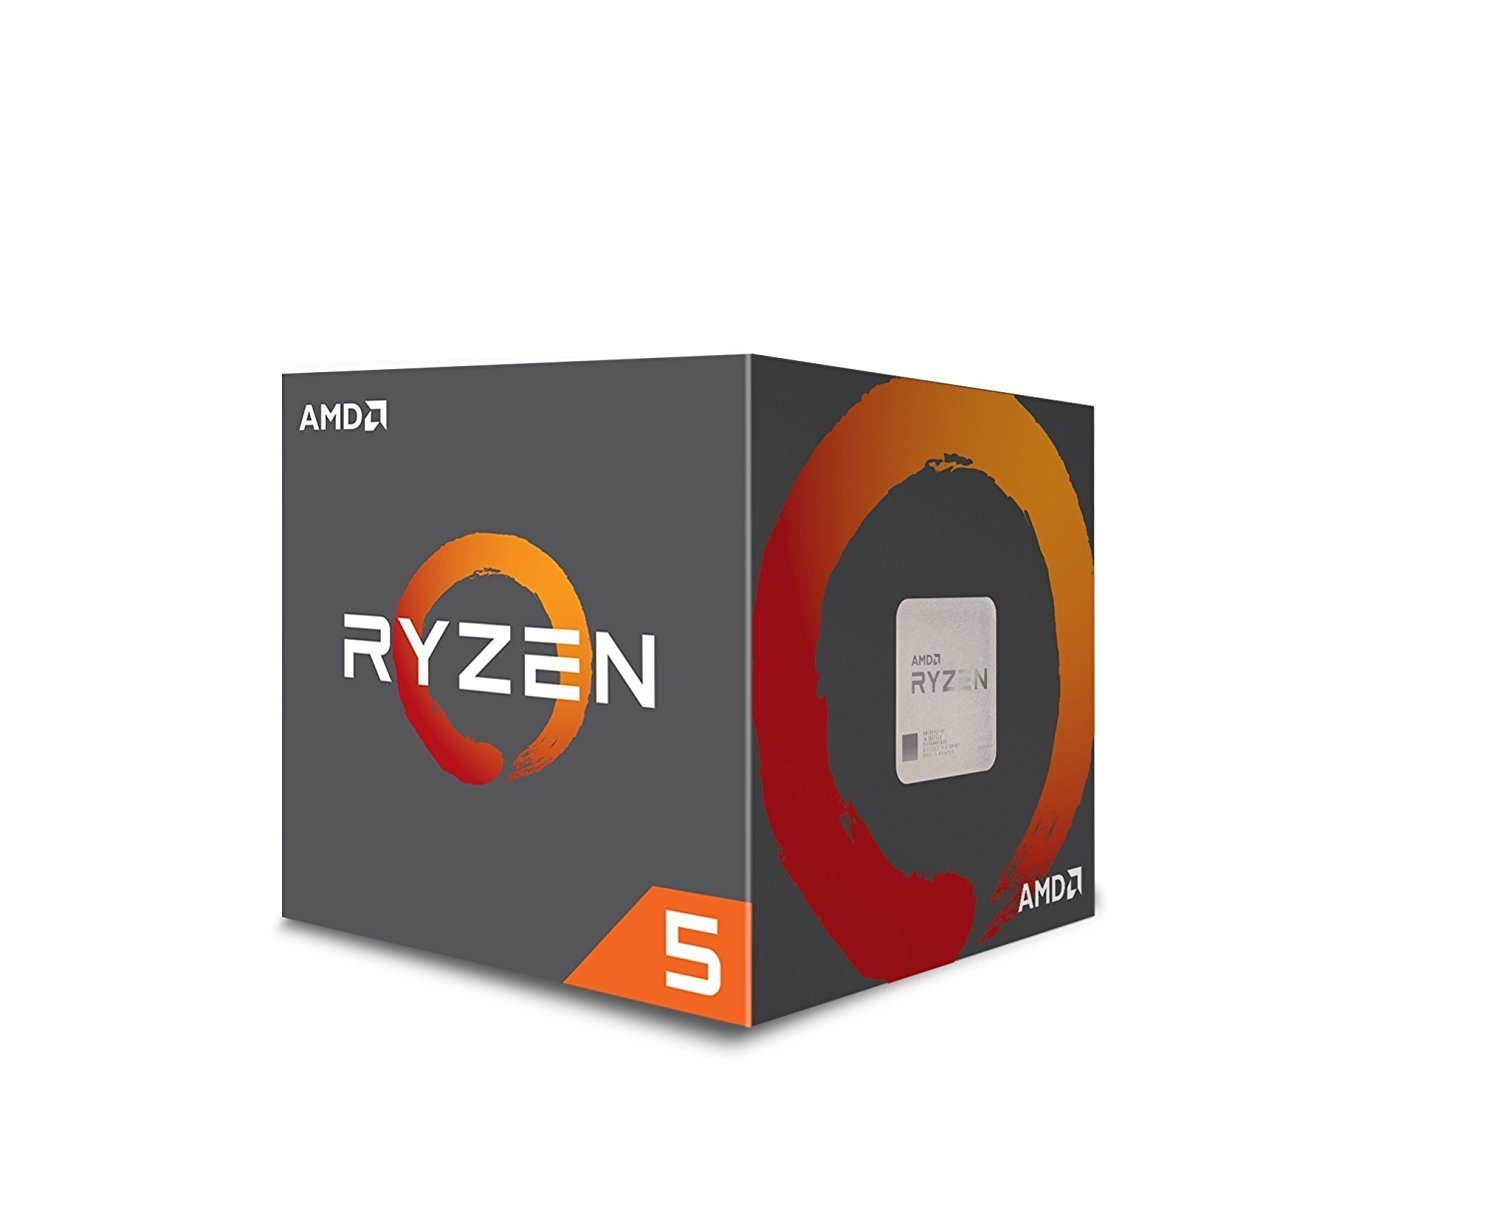 AMD RYZEN 5 1600X 3.6GHz AM4